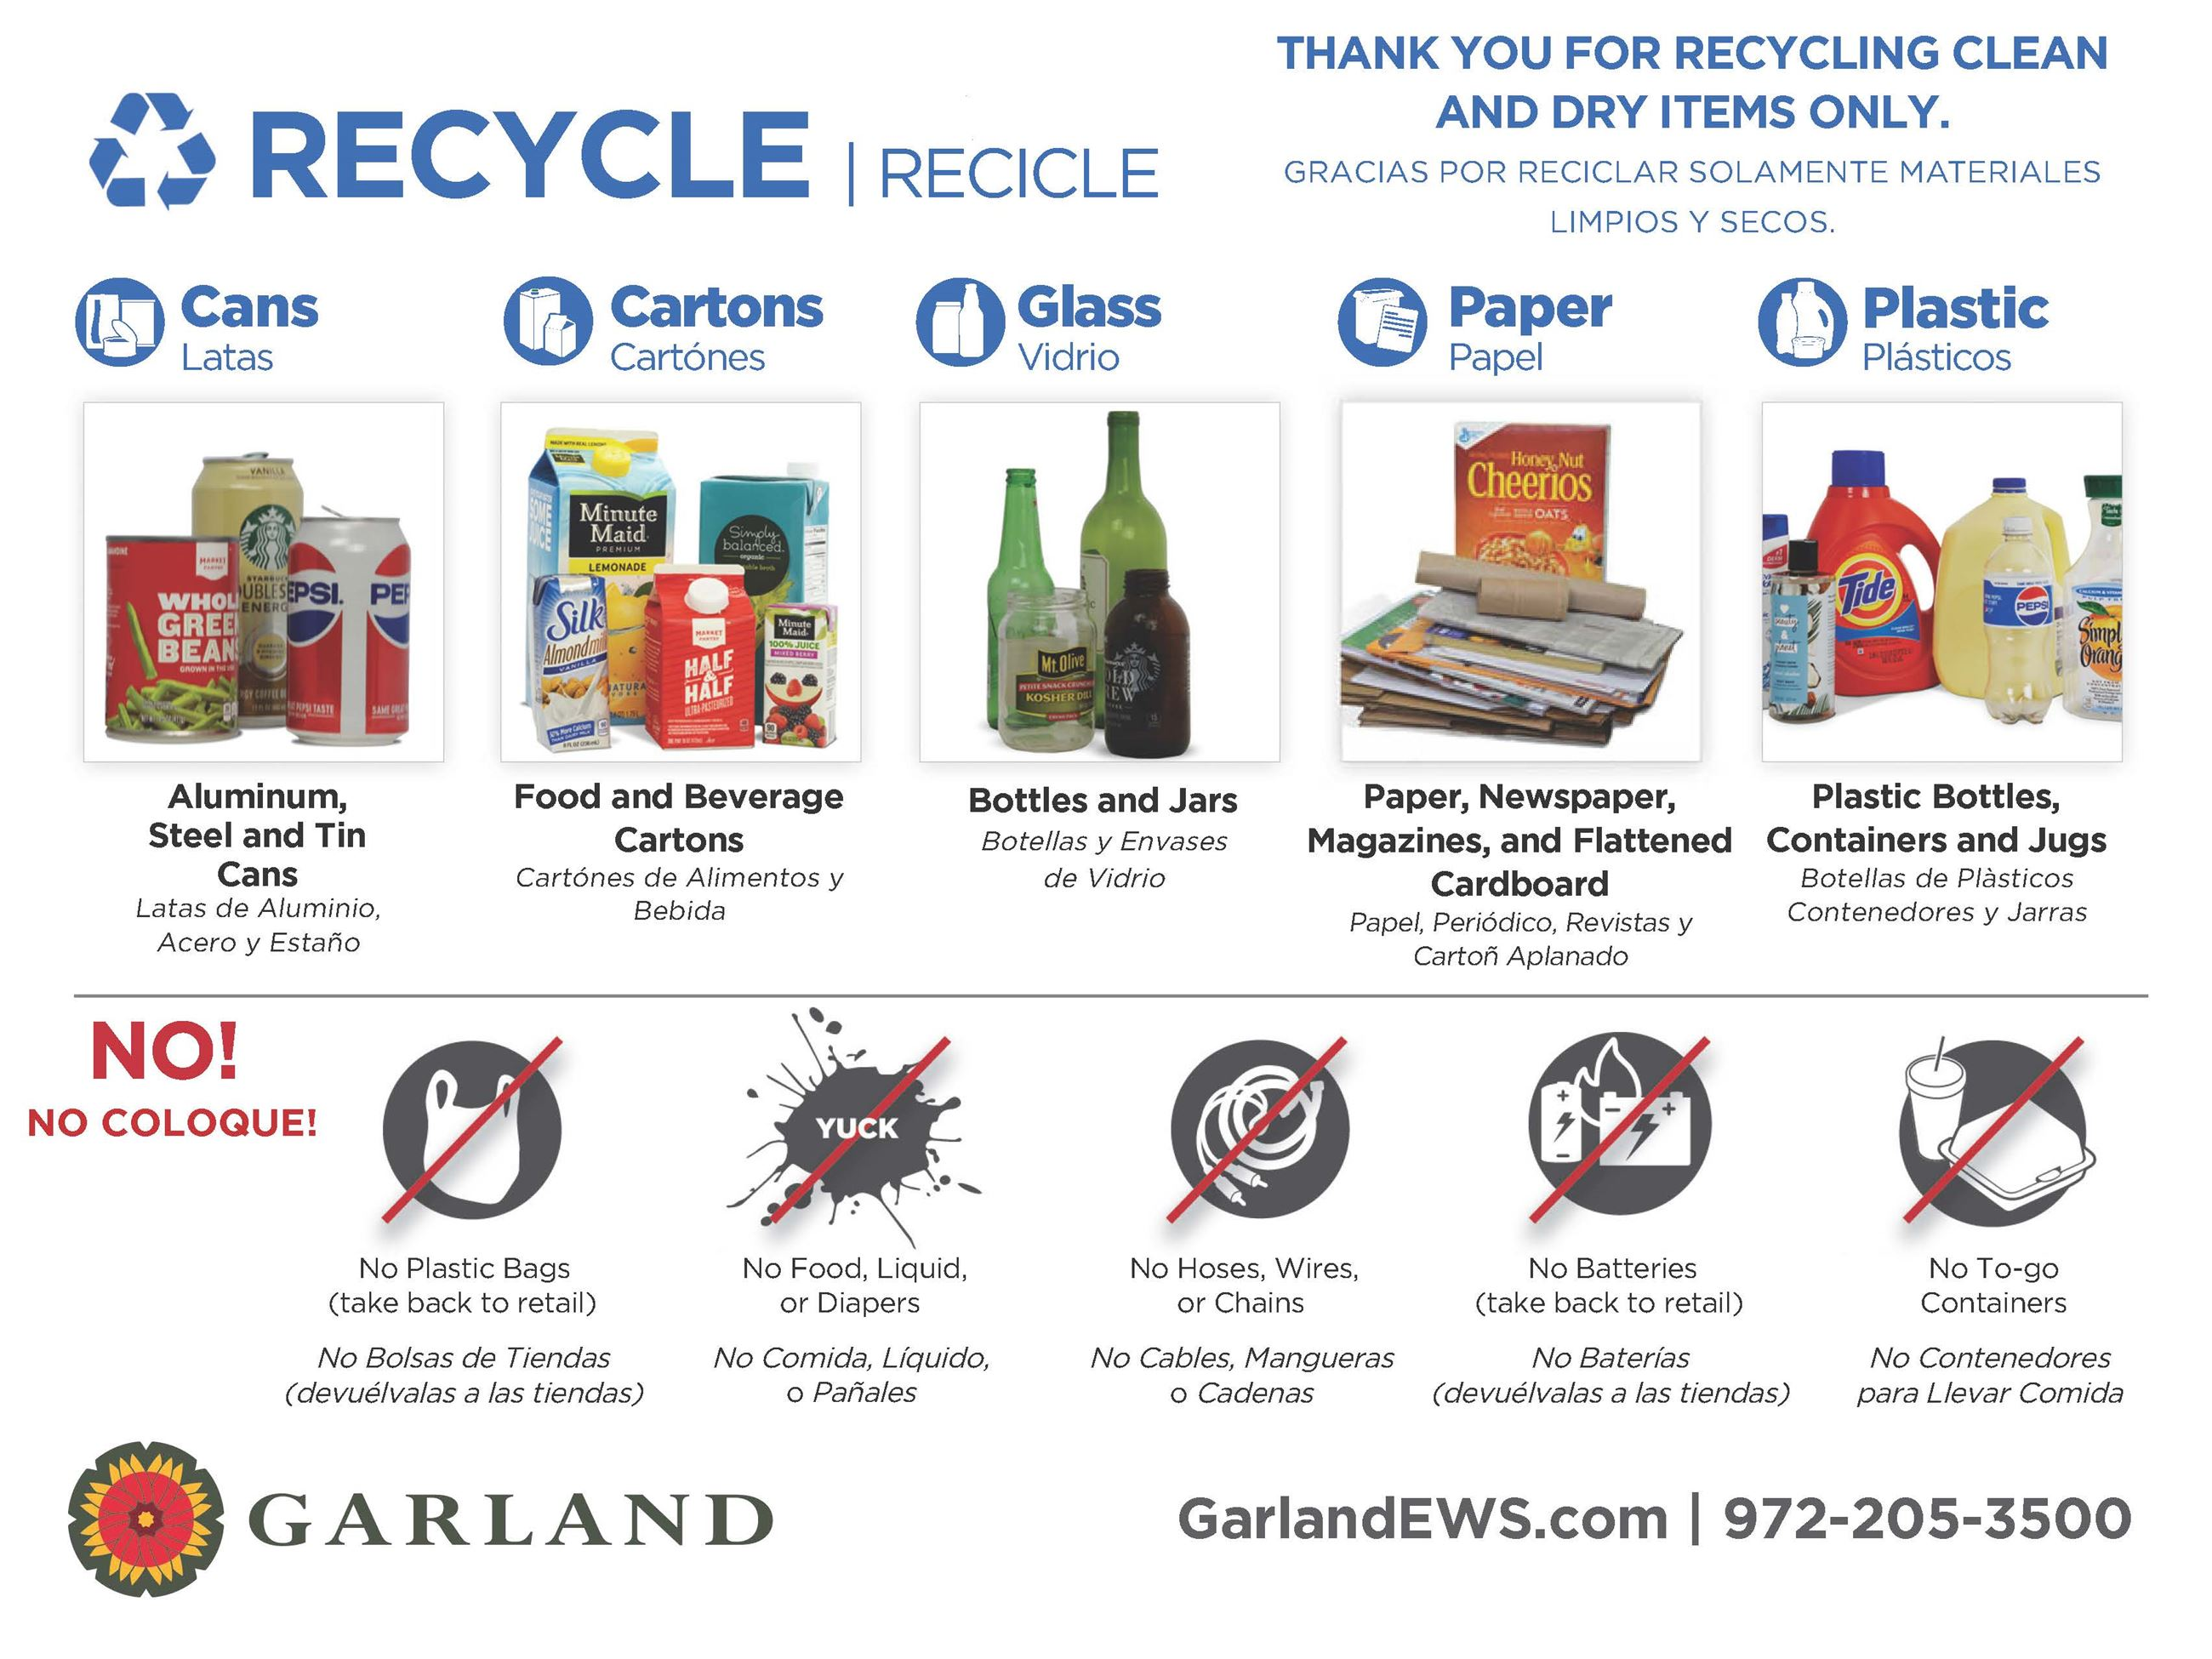 Below is a list of items that are recyclable in your blue recycling cart.